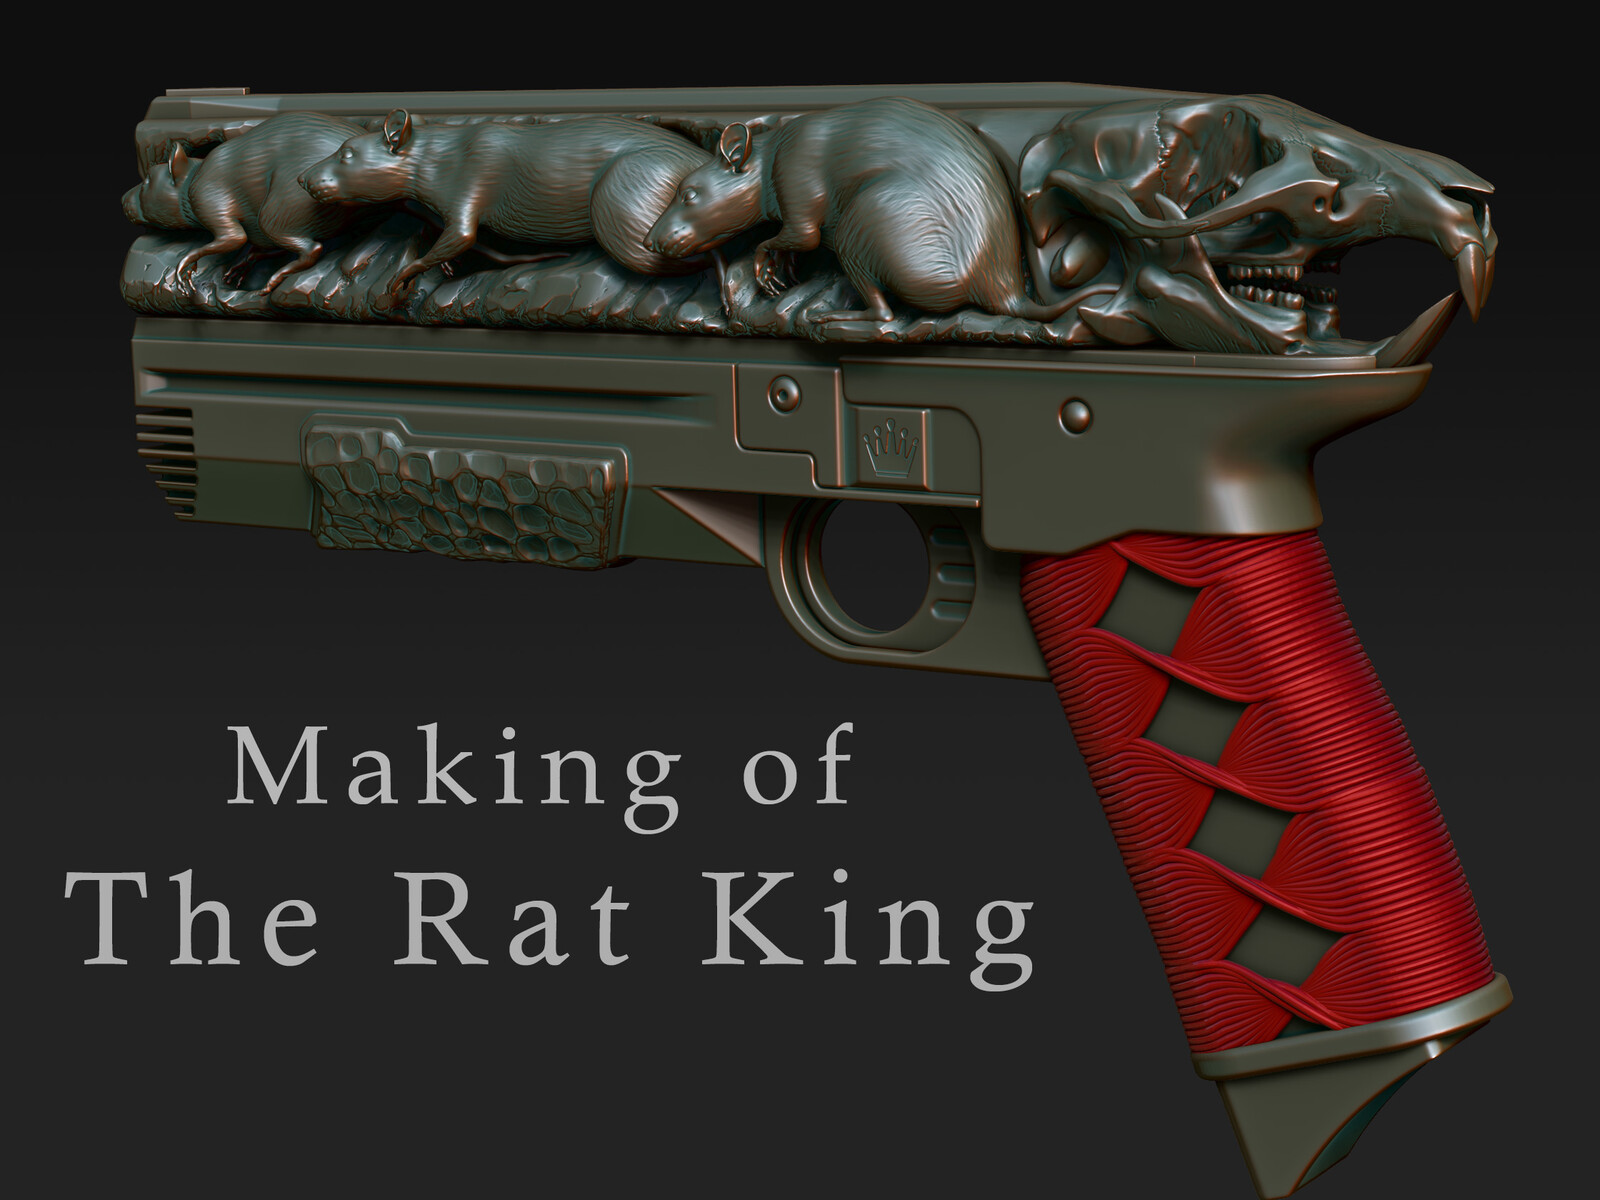 Making of The Rat King